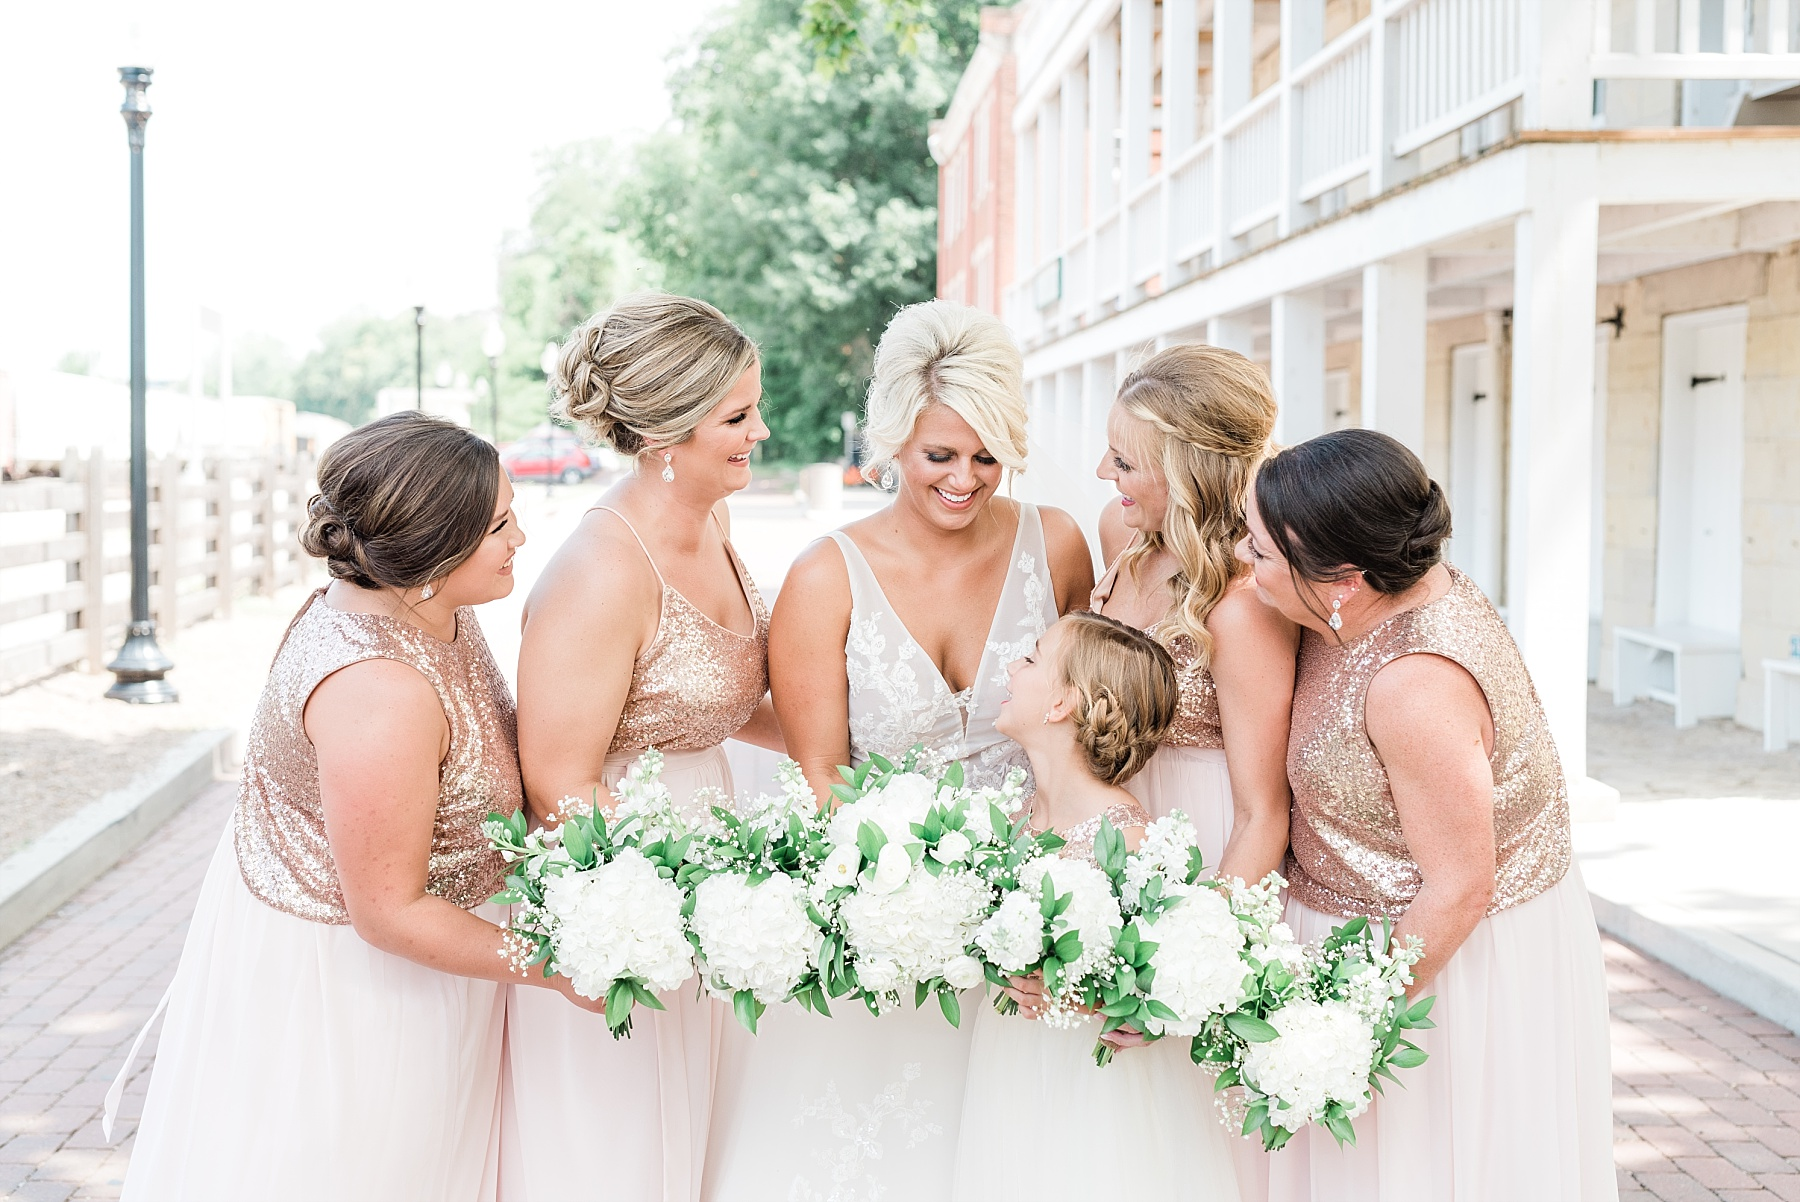 Rose Gold, White, and Greenery High Class Summer Wedding at The Millbottom in Downtown Jefferson City by Kelsi Kliethermes Photography_0033.jpg